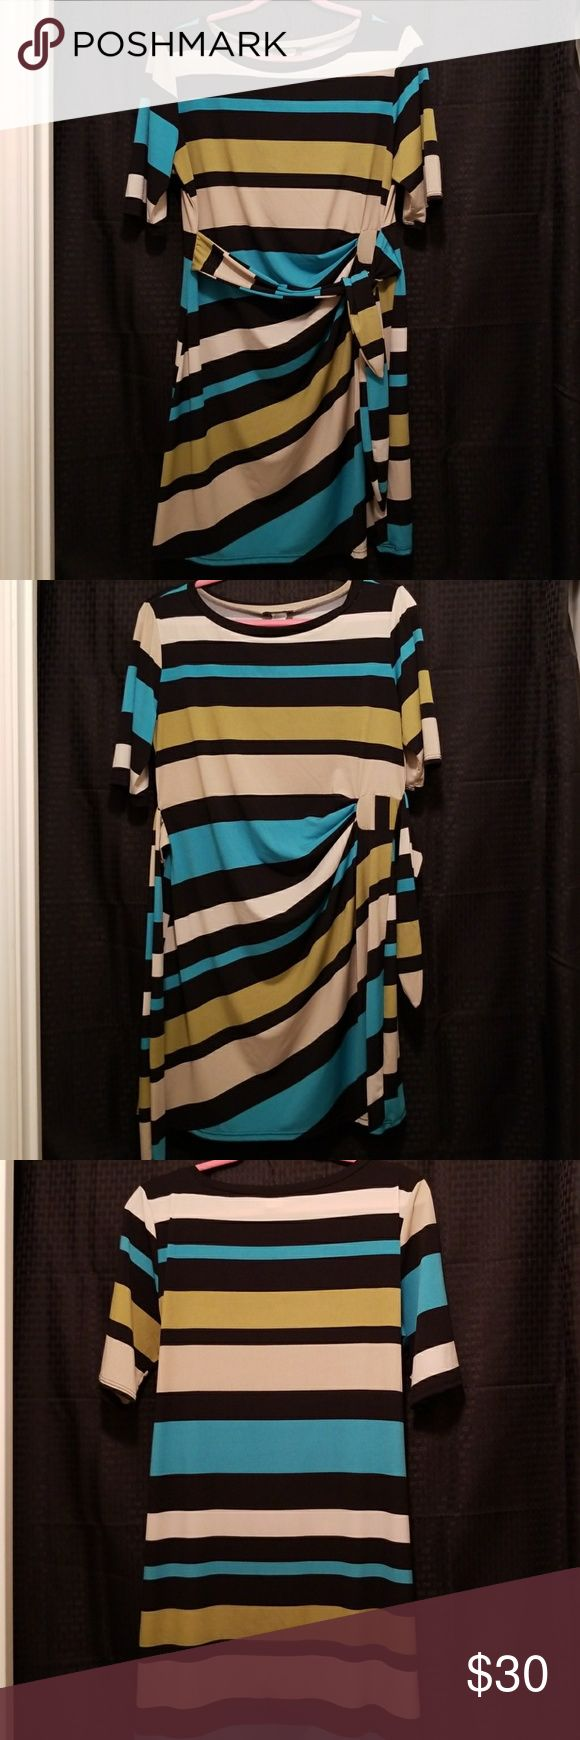 Color block sheath dress This brilliantly colored dress receives loads of compliments!  Slight ruching detail on front right side Belt can be worn in front or back Tag states Petite XL, fits ladies sizes 10-14 10 looser fit  12 ultimate fit 14 curve hugger  Stops just above knee cap MSK Dresses Midi